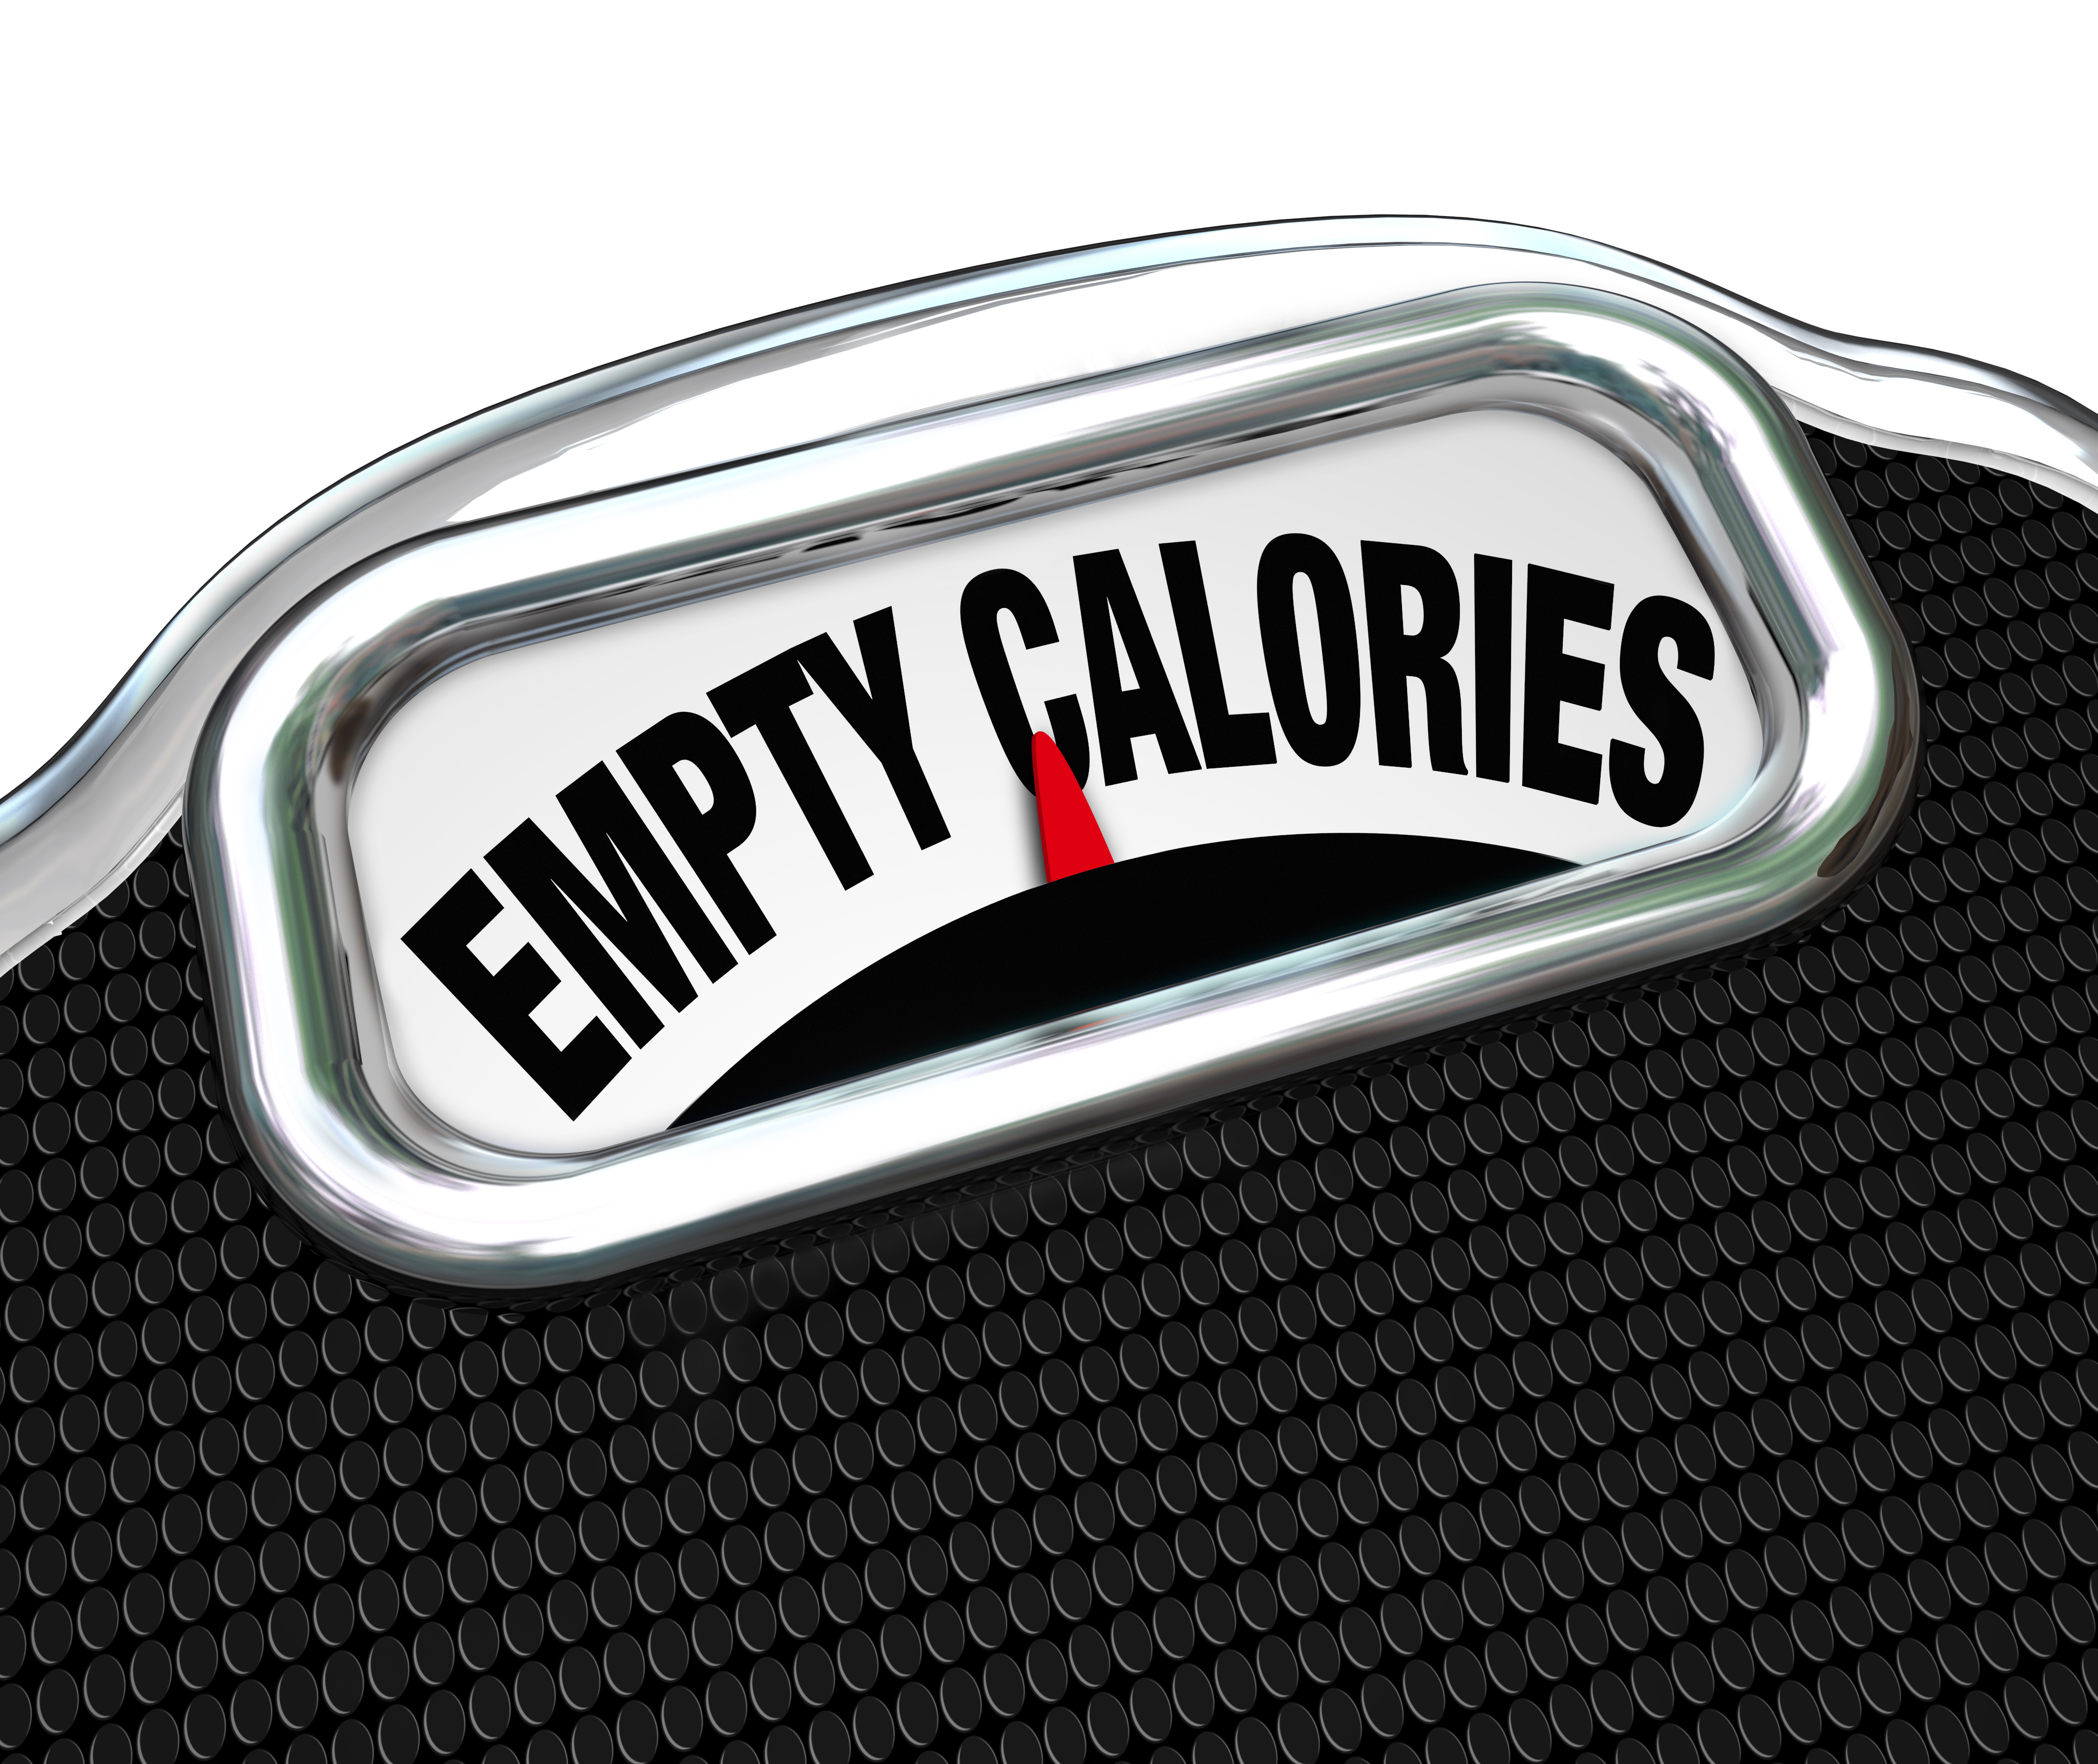 Image result for empty calories